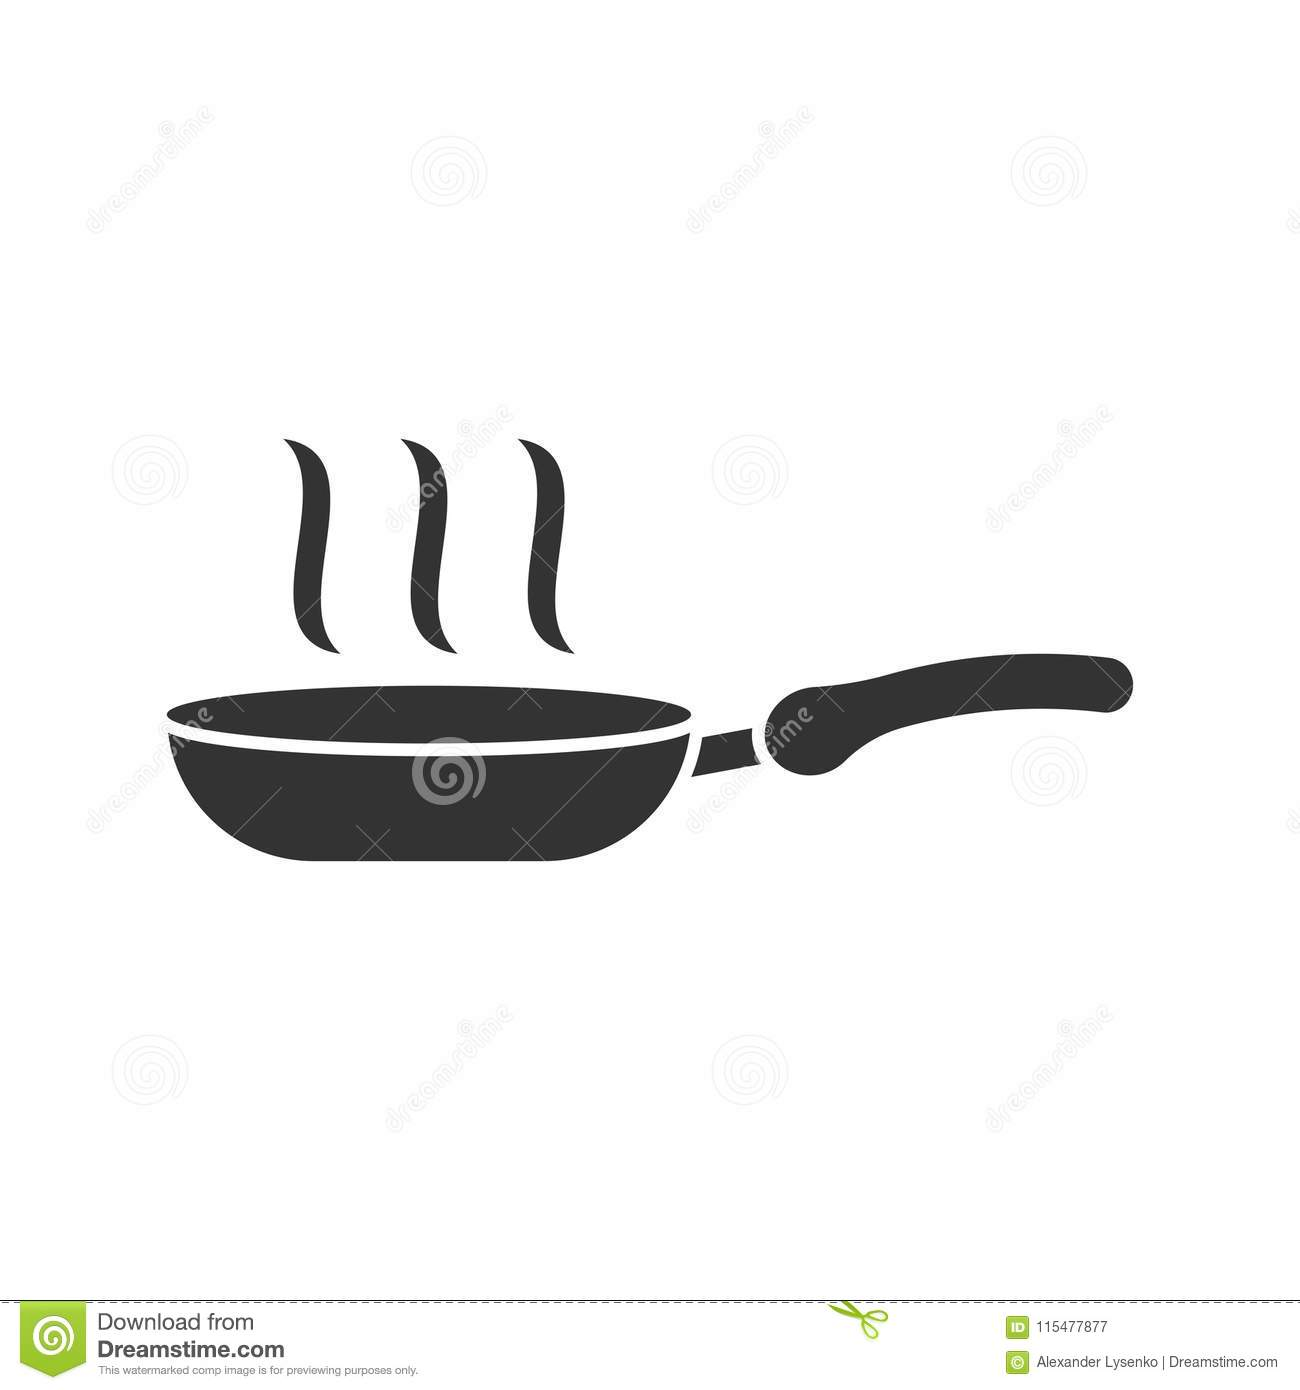 Frying pan icon in flat style. Cooking pan illustration on white